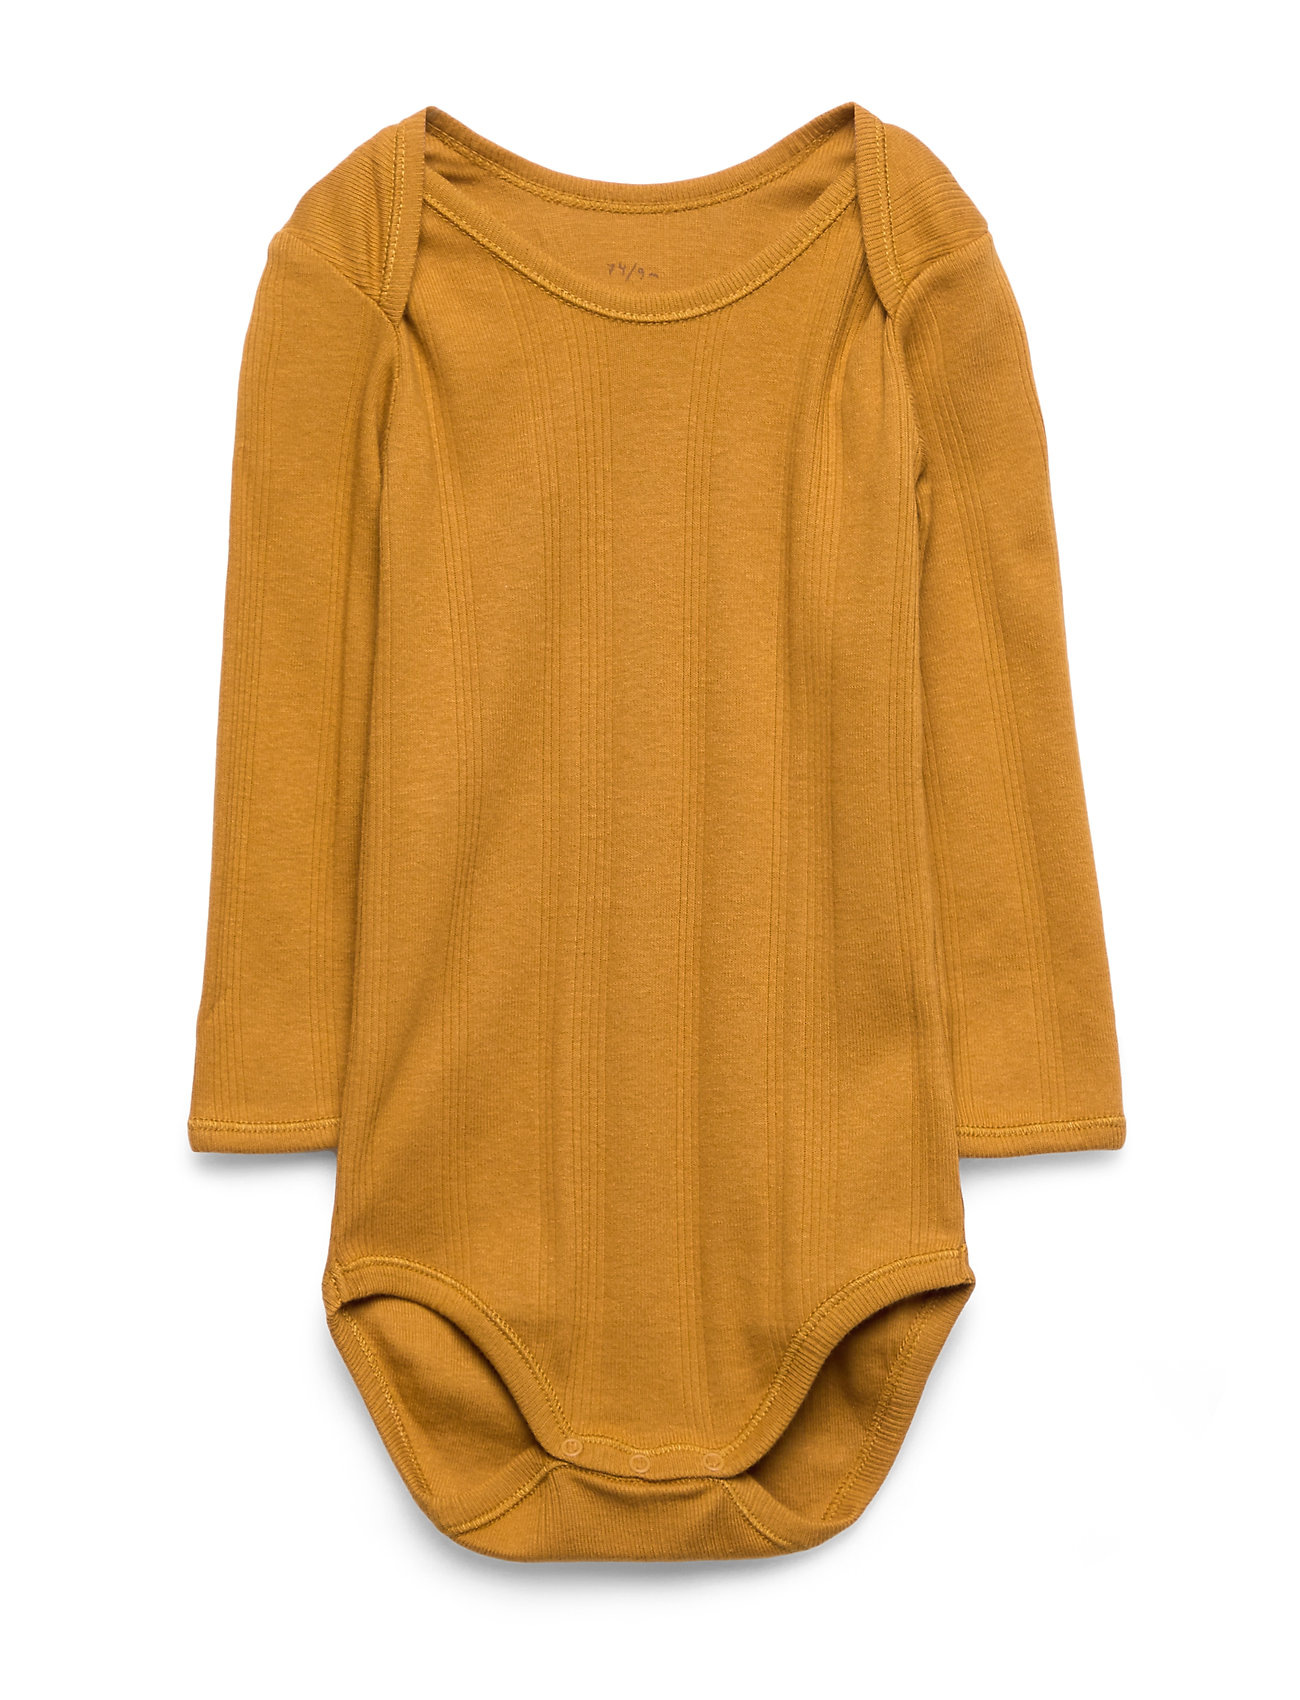 Noa Noa Miniature Baby Body - GOLDEN BROWN